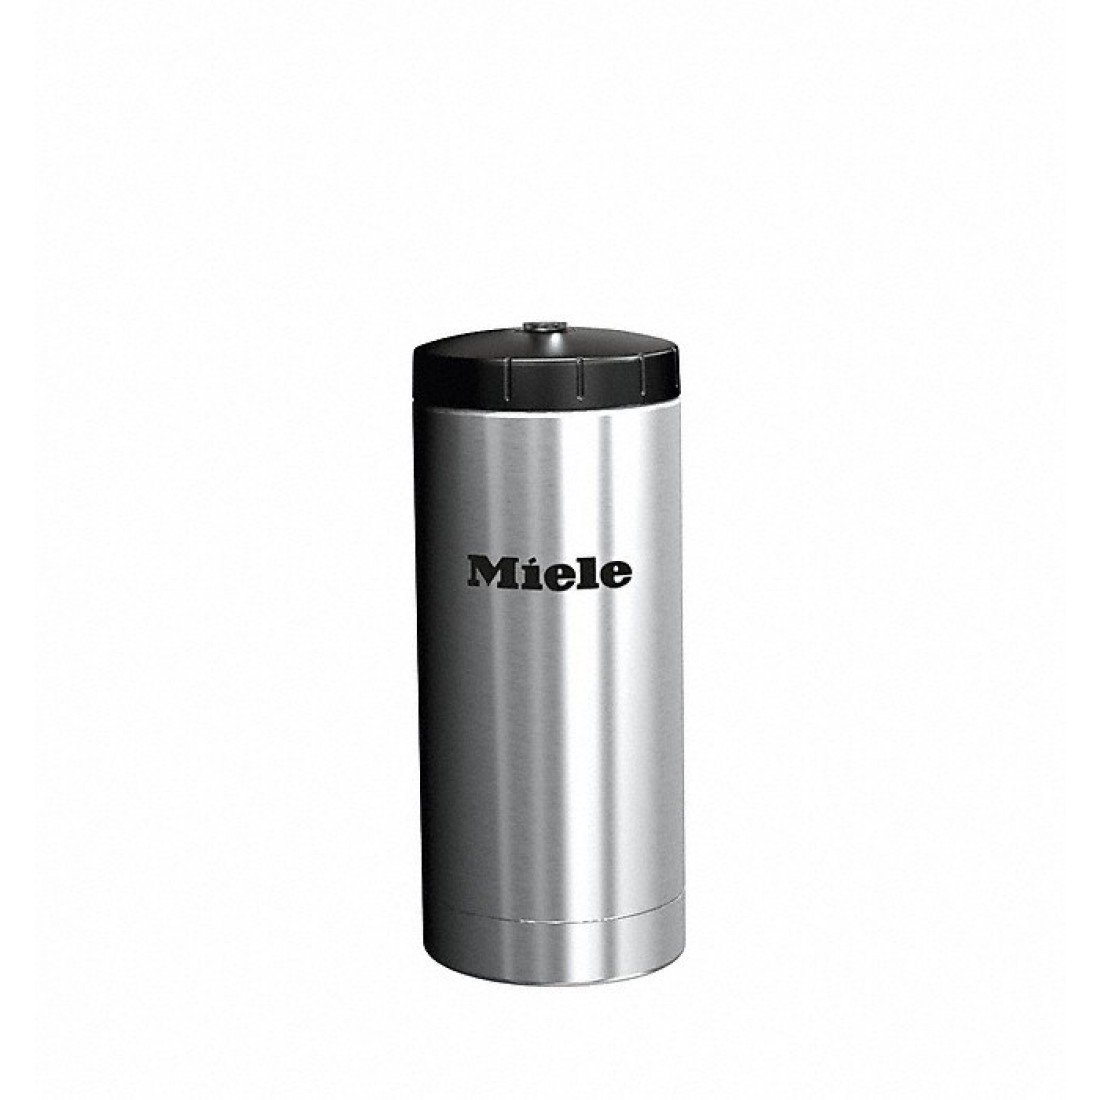 Miele Milk container